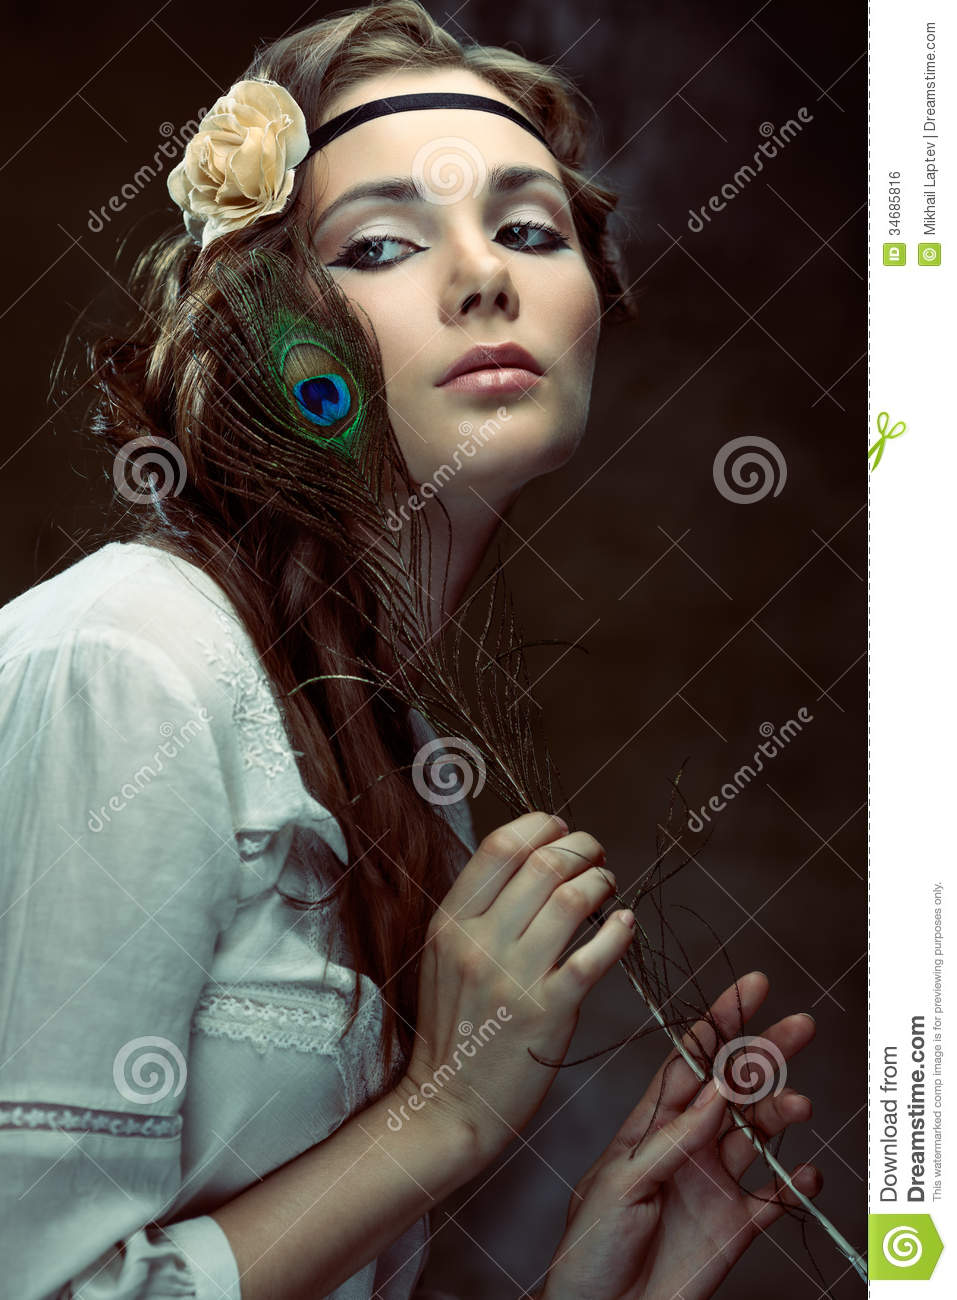 hippie girl royalty free stock image